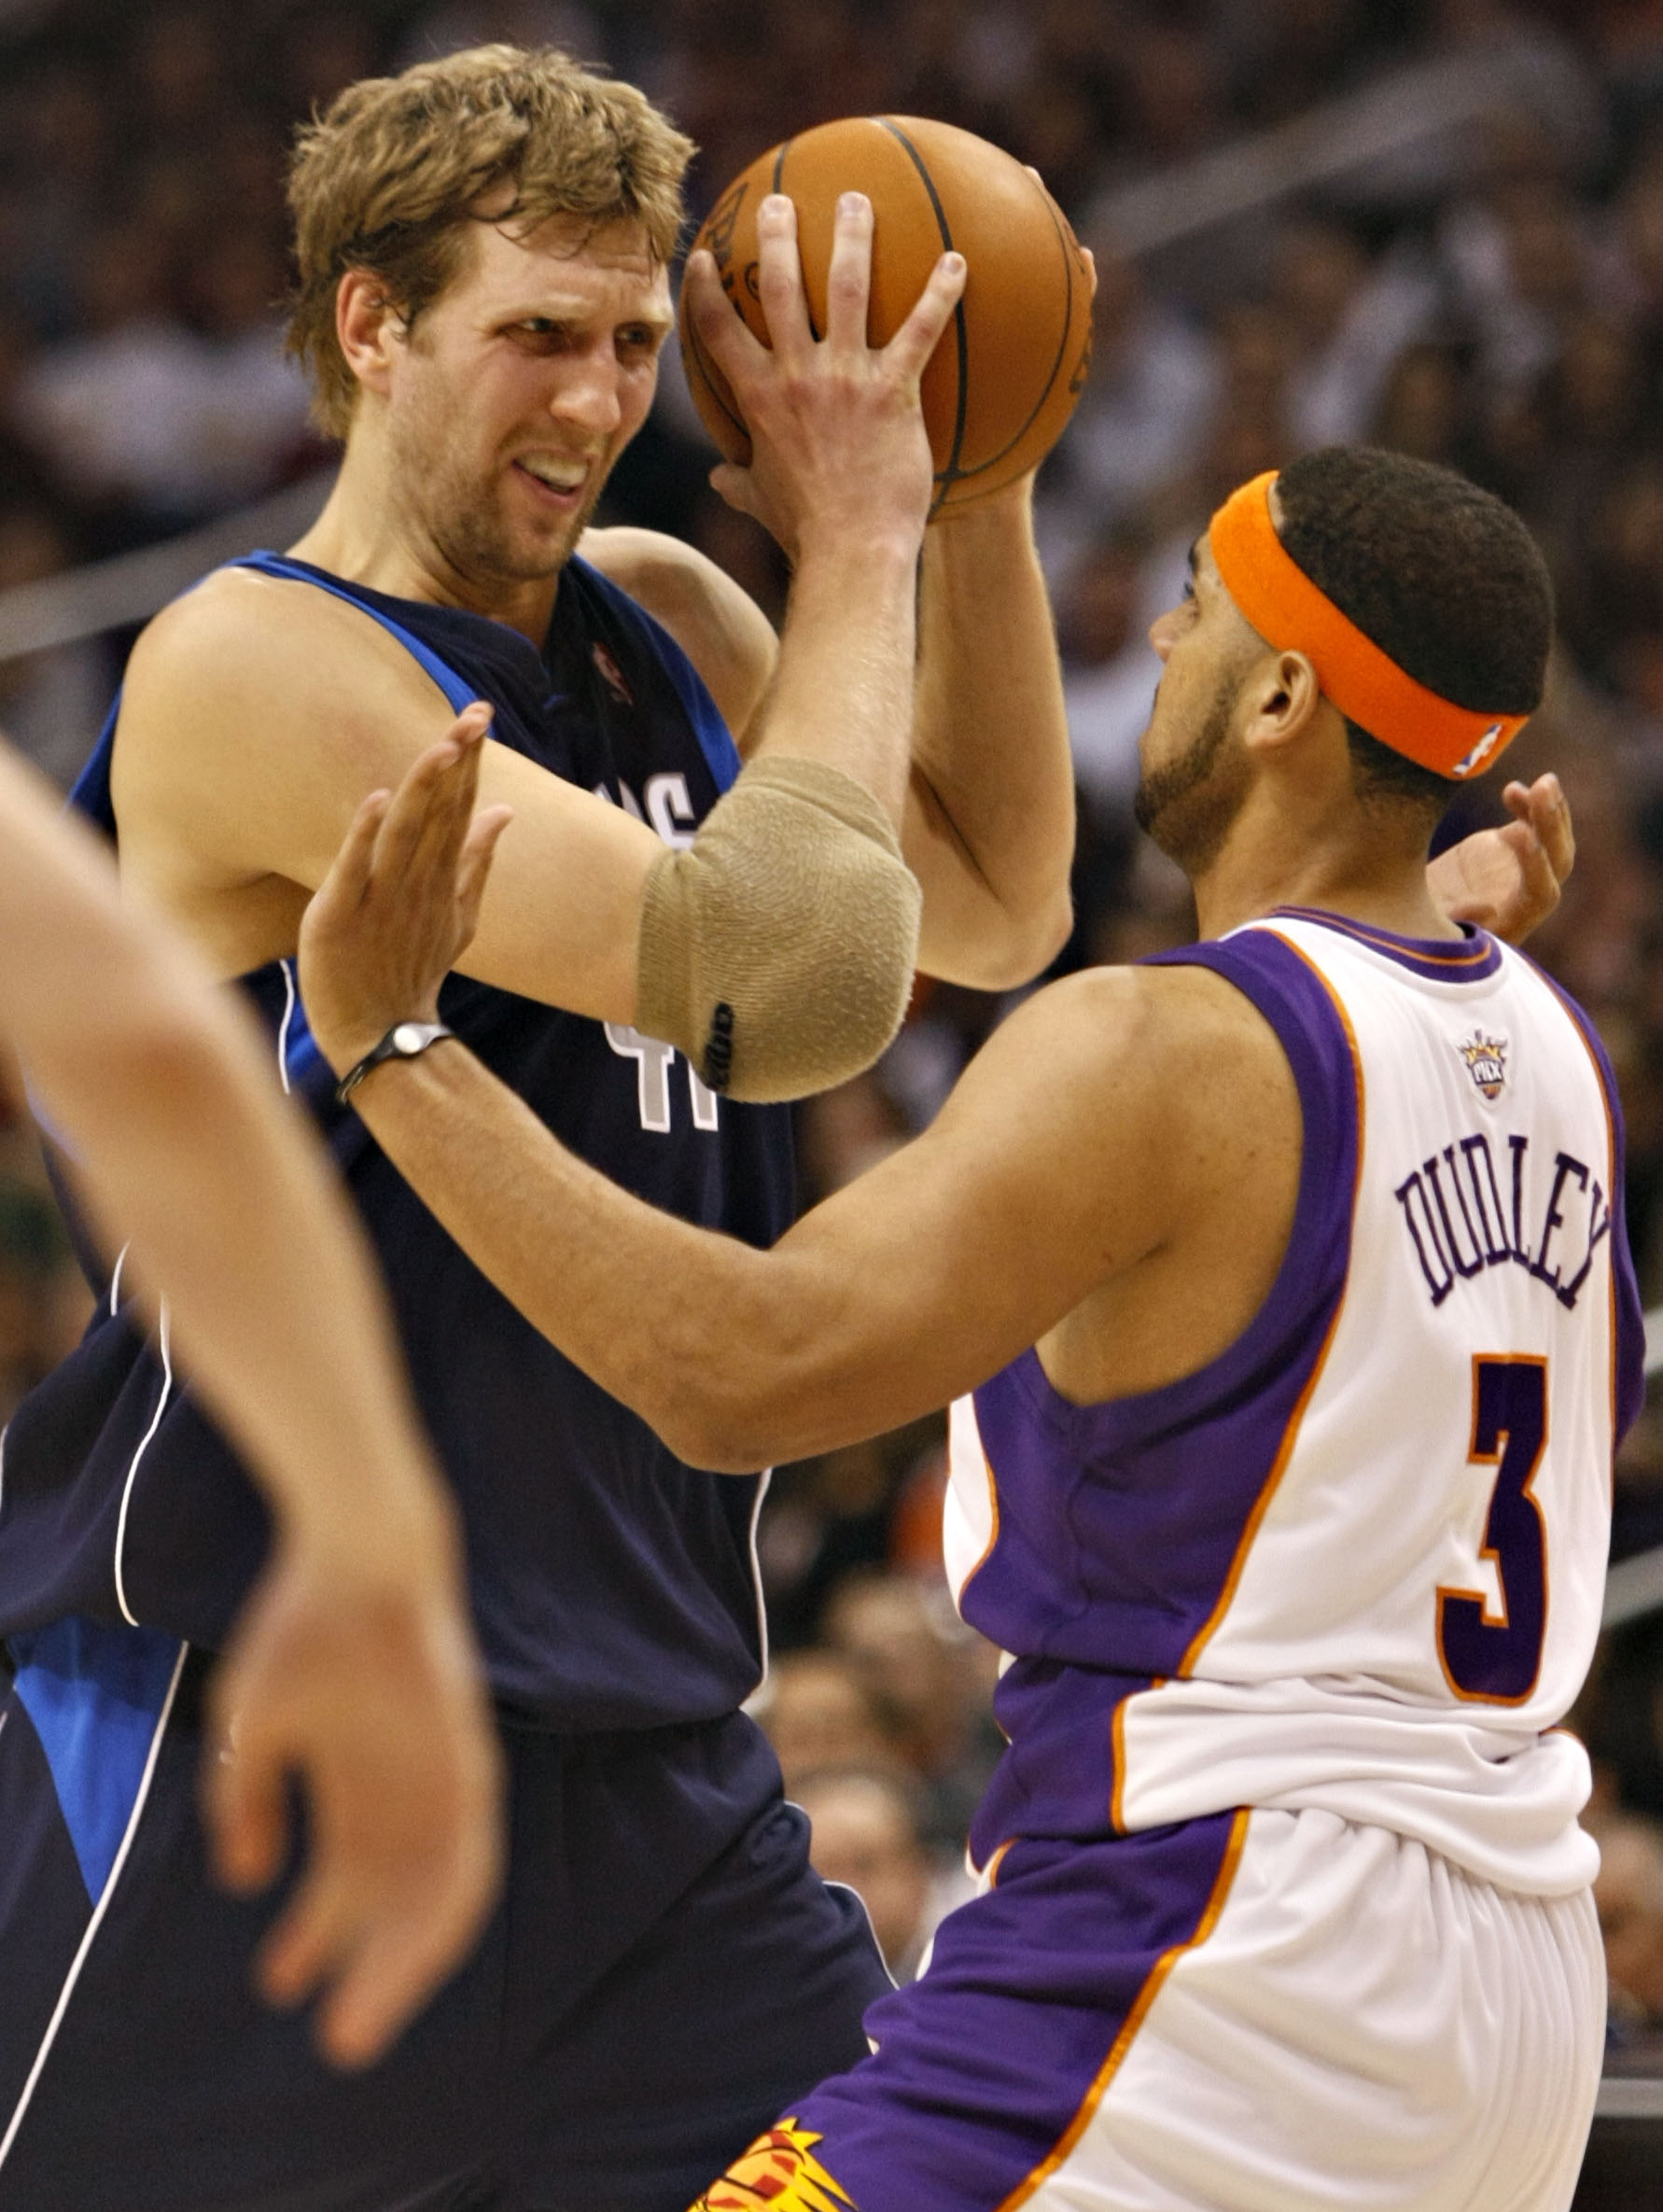 Dallas Mavericks' Dirk Nowitzki, left, looks to drive against Phoenix Suns' Jared Dudley during the first quarter of an NBA basketball game on Thursda...